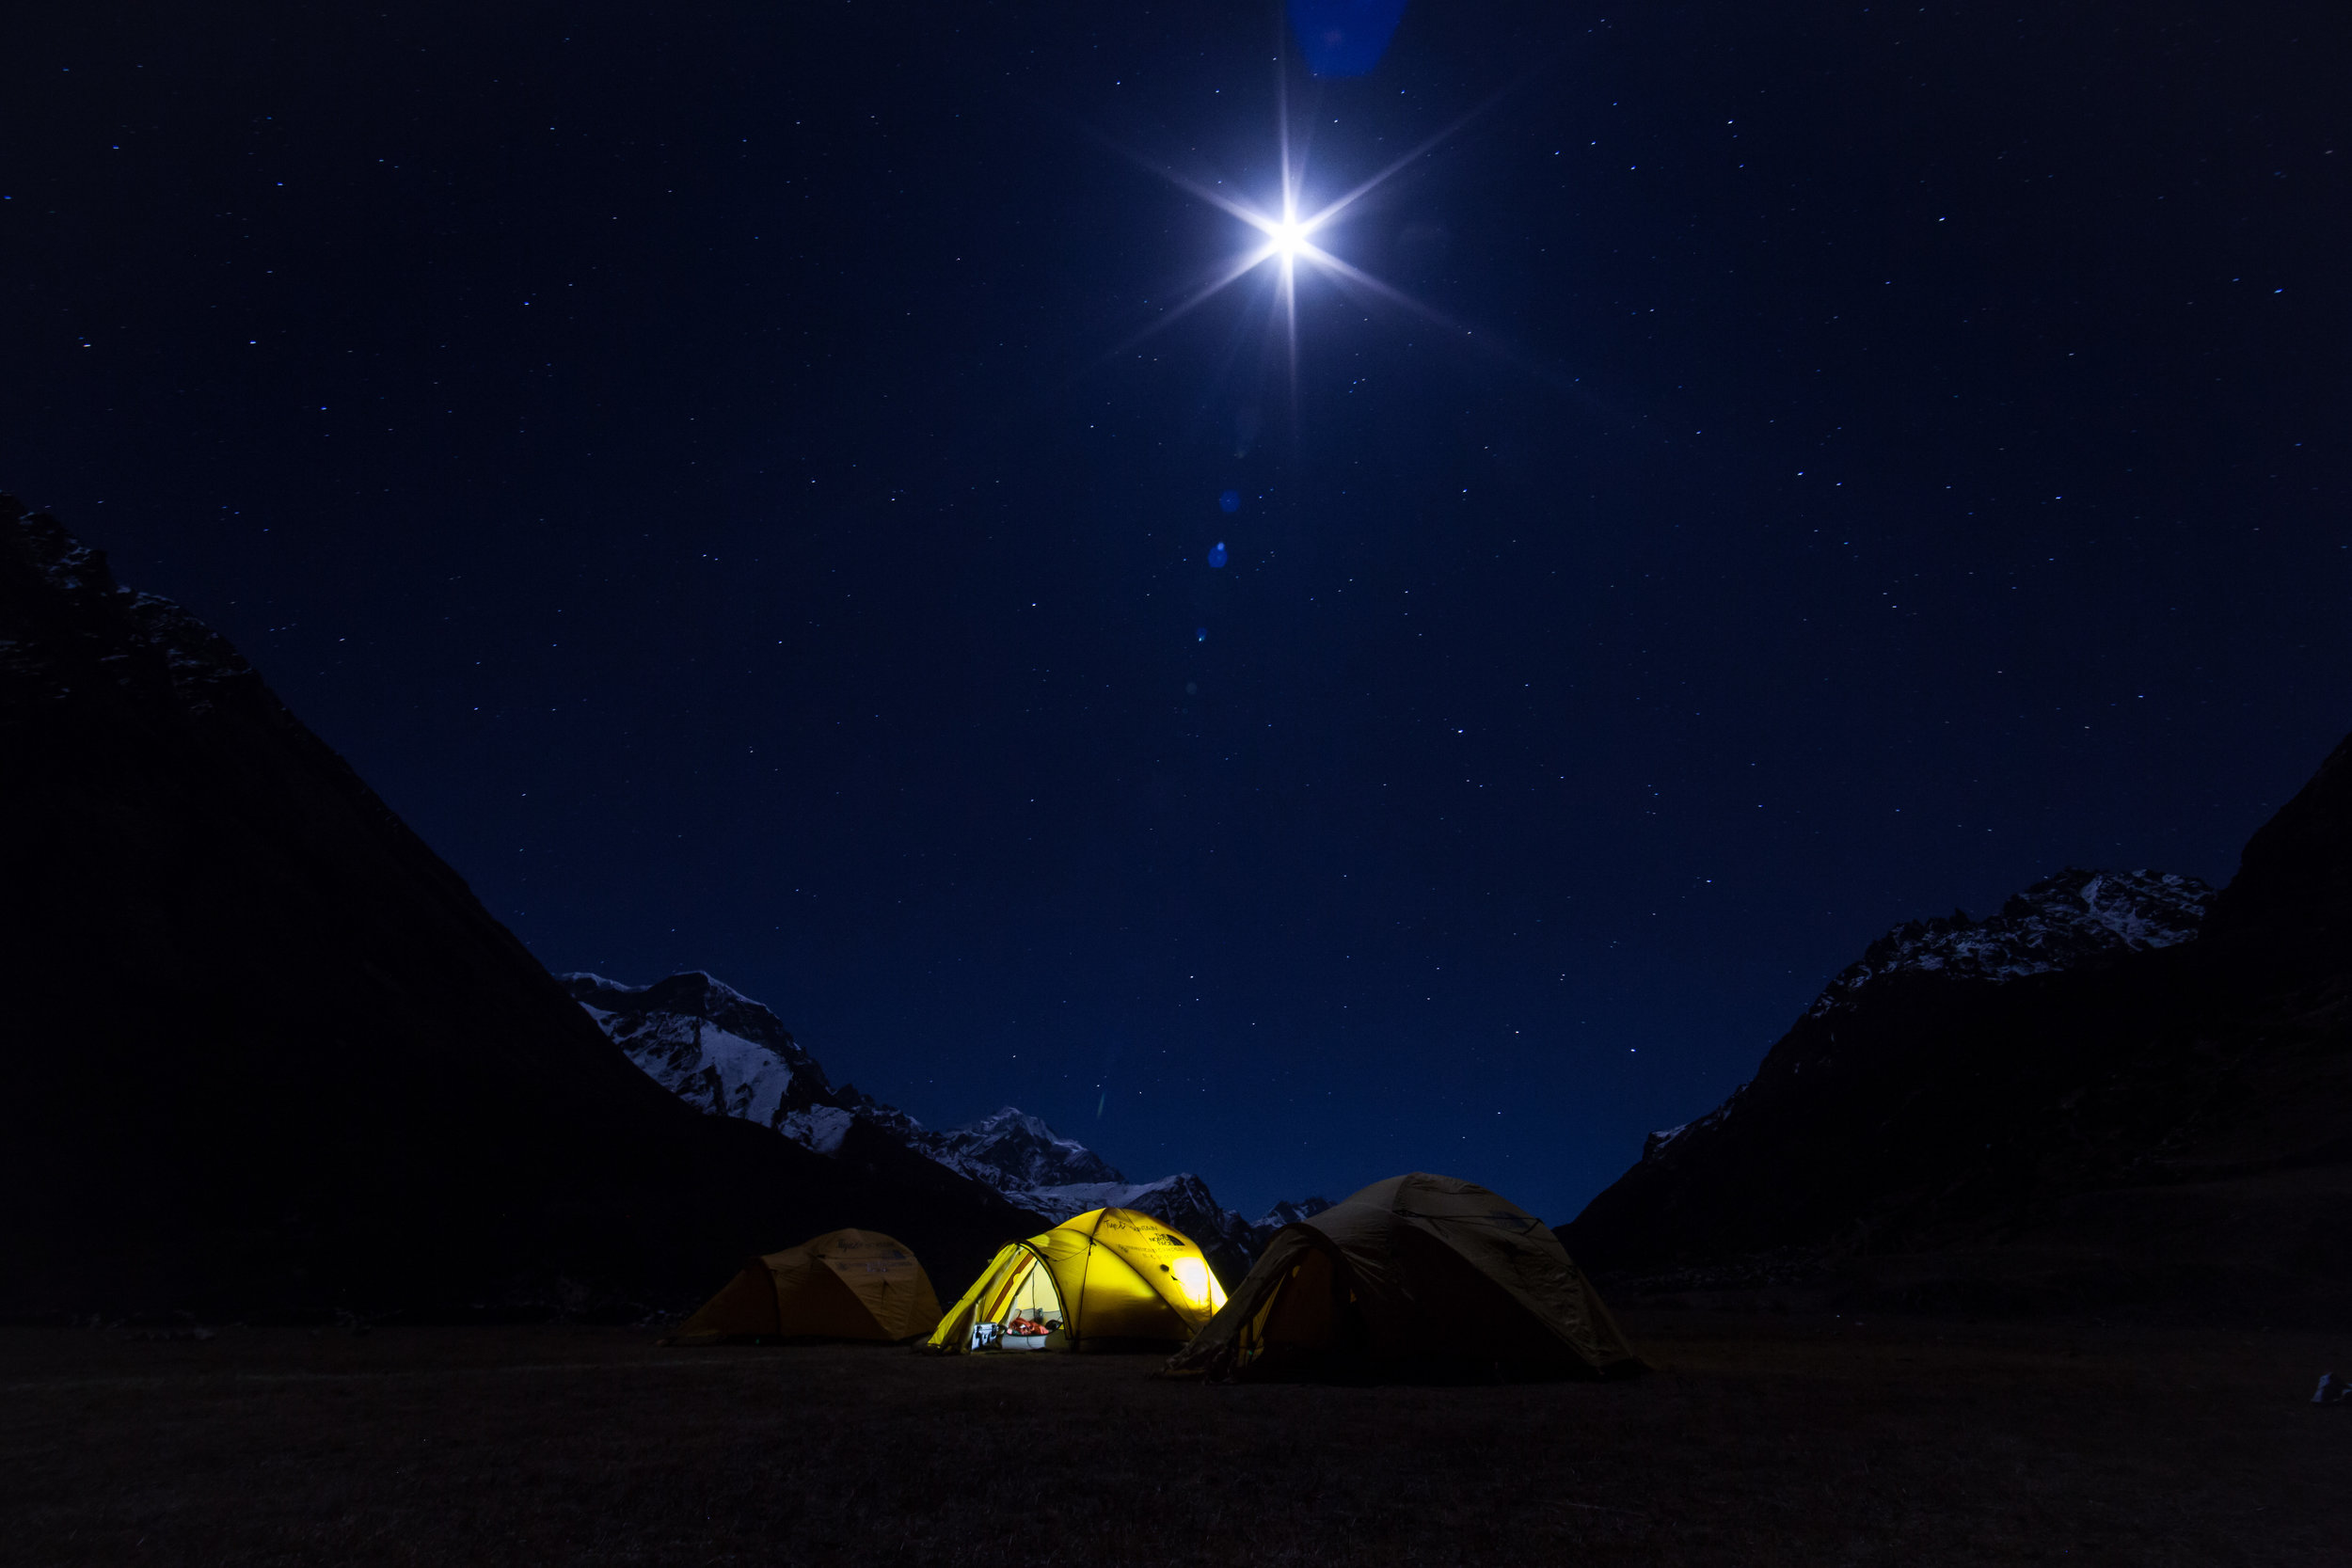 Base Camp Stary Night-2.jpg